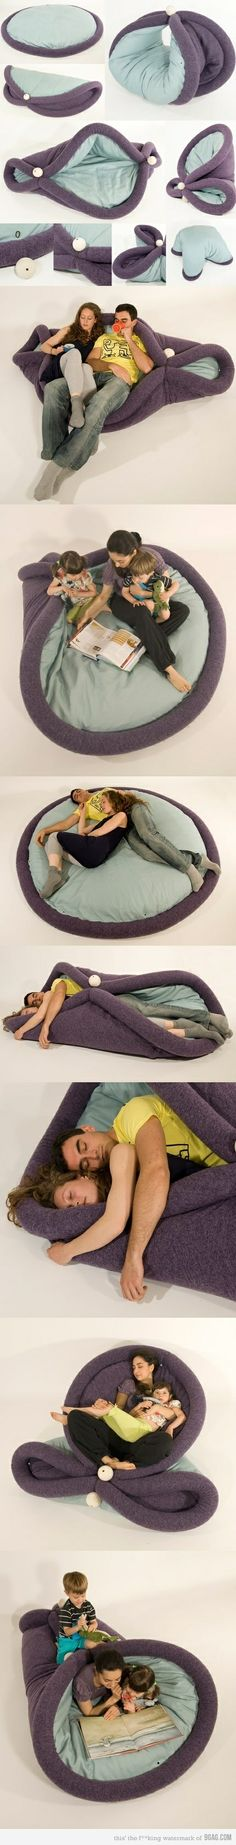 I most certainly need to acquire this thing... people that say it looks uncomfortable are crazy